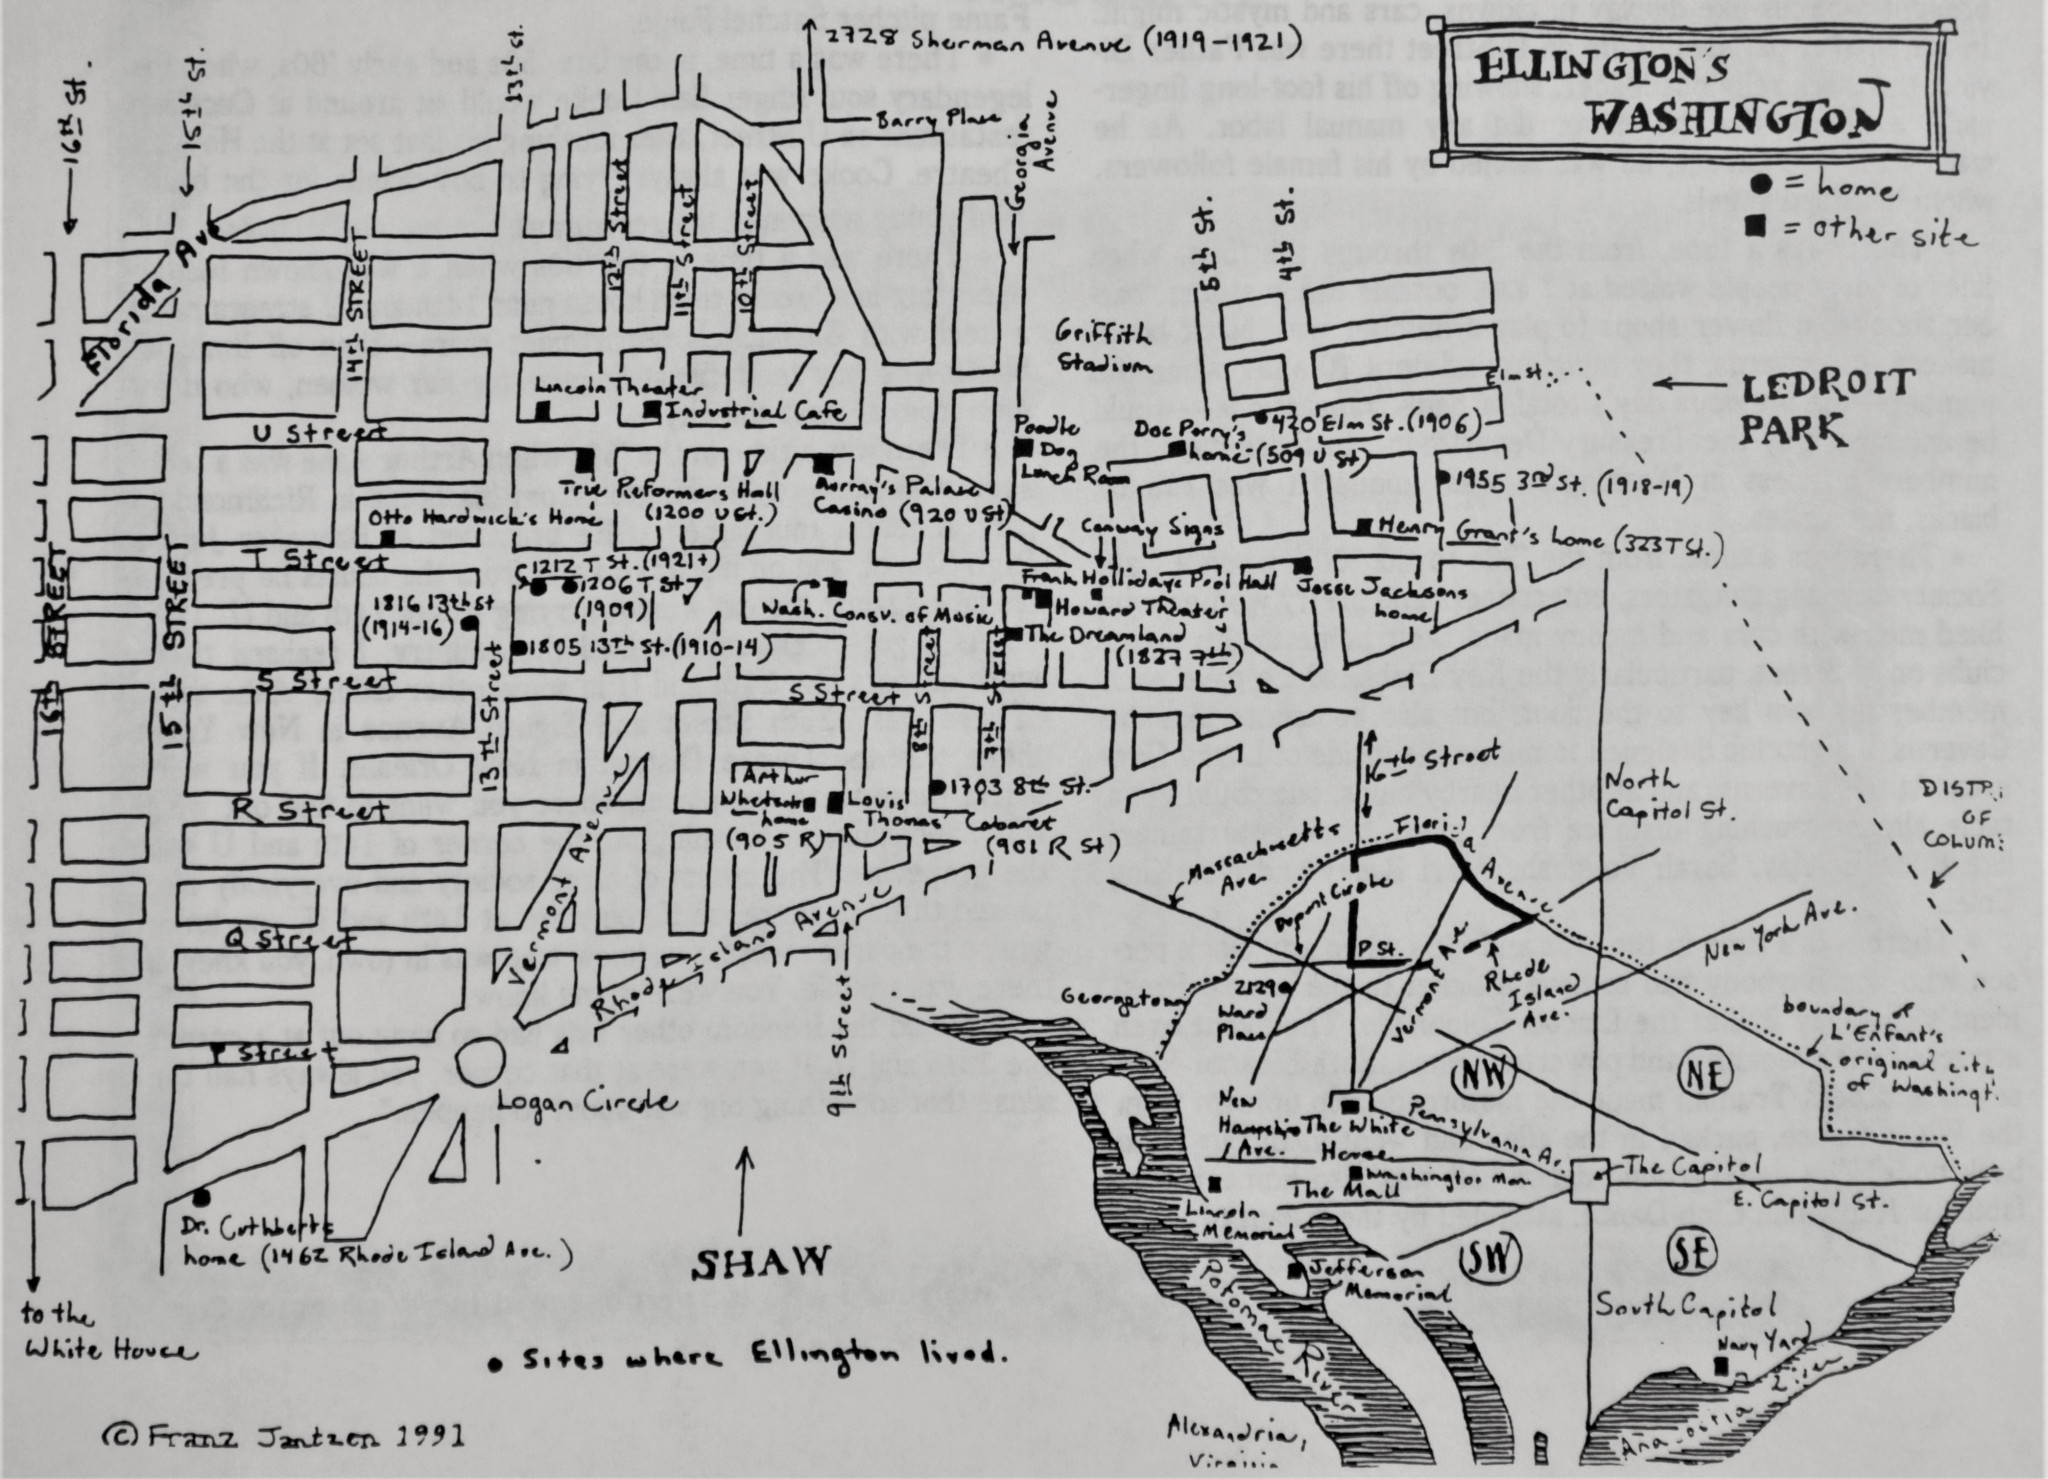 "Hand-drawn map of Ellington's Washington by Franz Jantzen highlighting prominent U Street locations included in the ""Remembering U Street: A Pictorial Reminiscence"" book from the 1994 U Street Festival by Henry Whitehead et al. Courtesy of George Washington University's Special Collections."